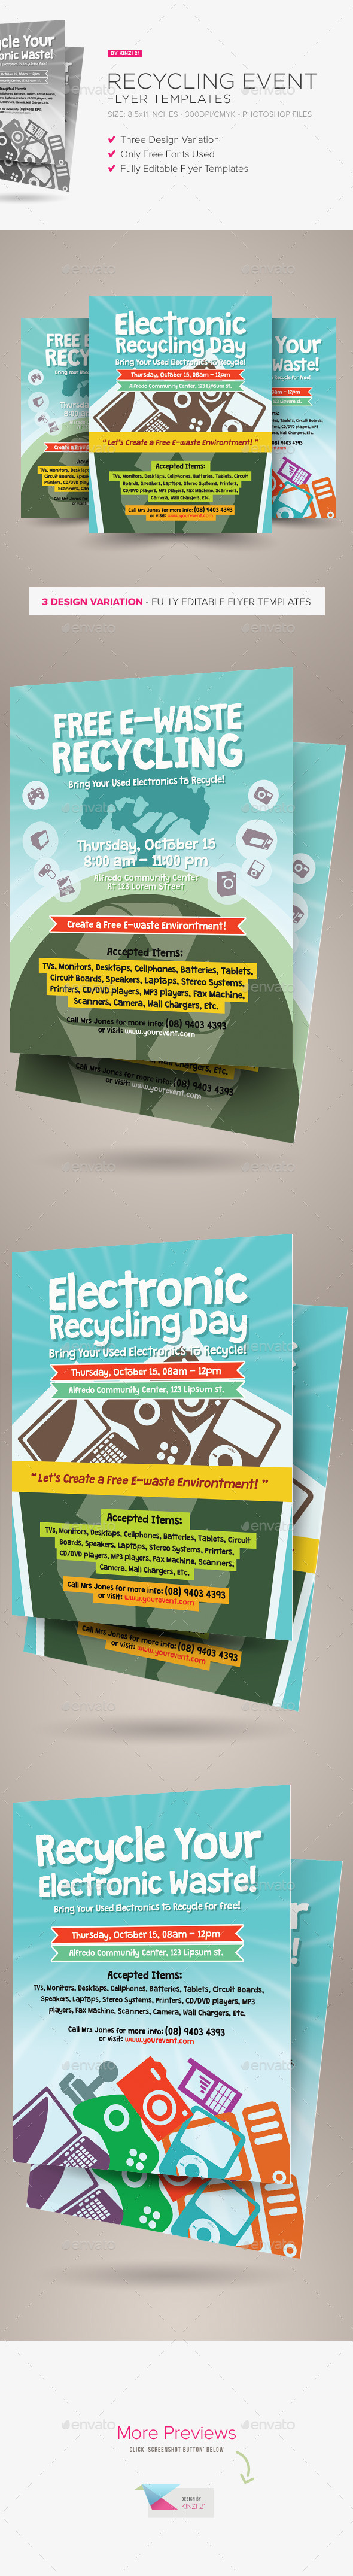 GraphicRiver Recycling Event Flyer Templates 9250703